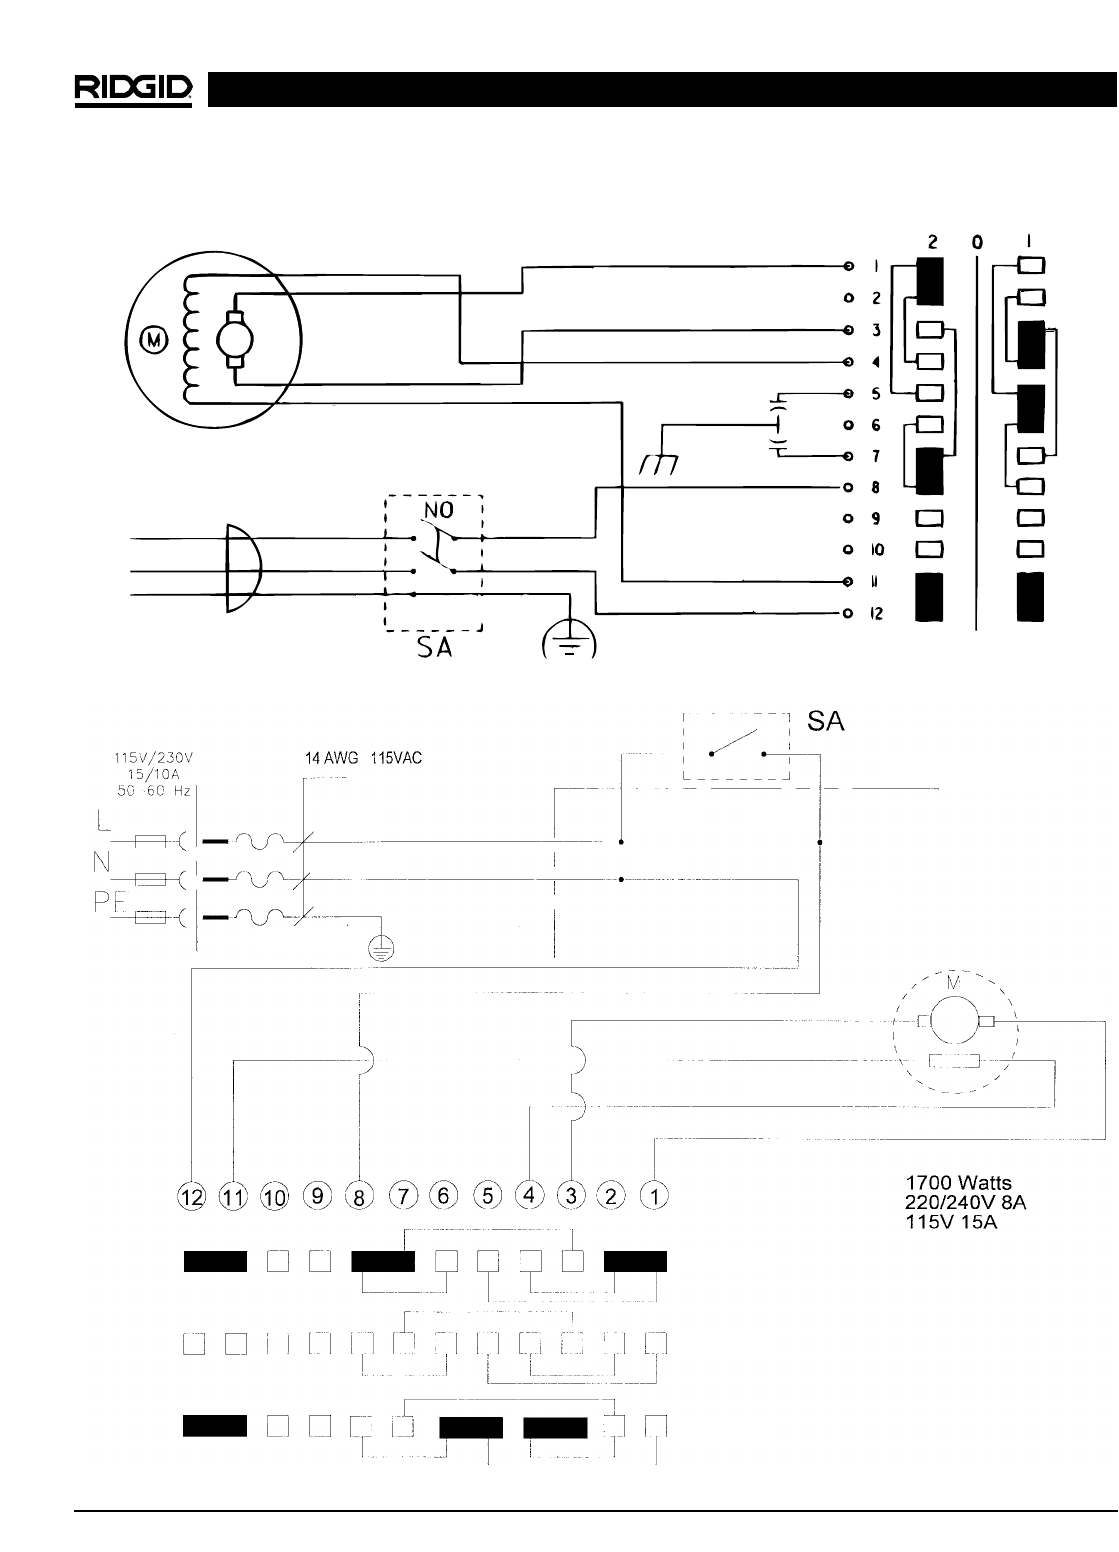 Ridgid 300 Switch Wiring Diagram Download